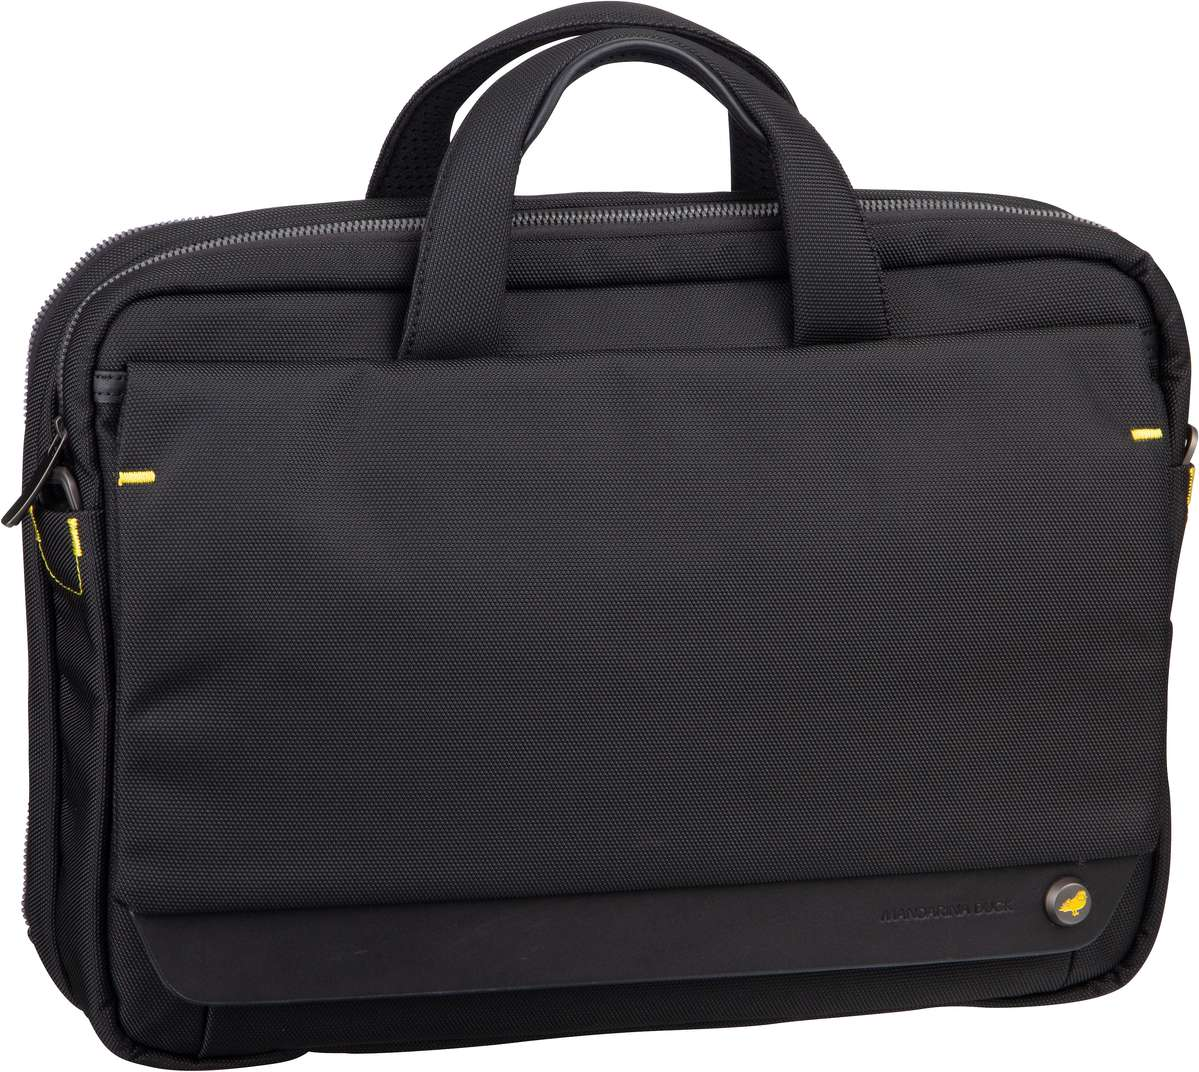 Mandarina Duck Notebooktasche / Tablet Mr. Duck Briefcase STC02 Black